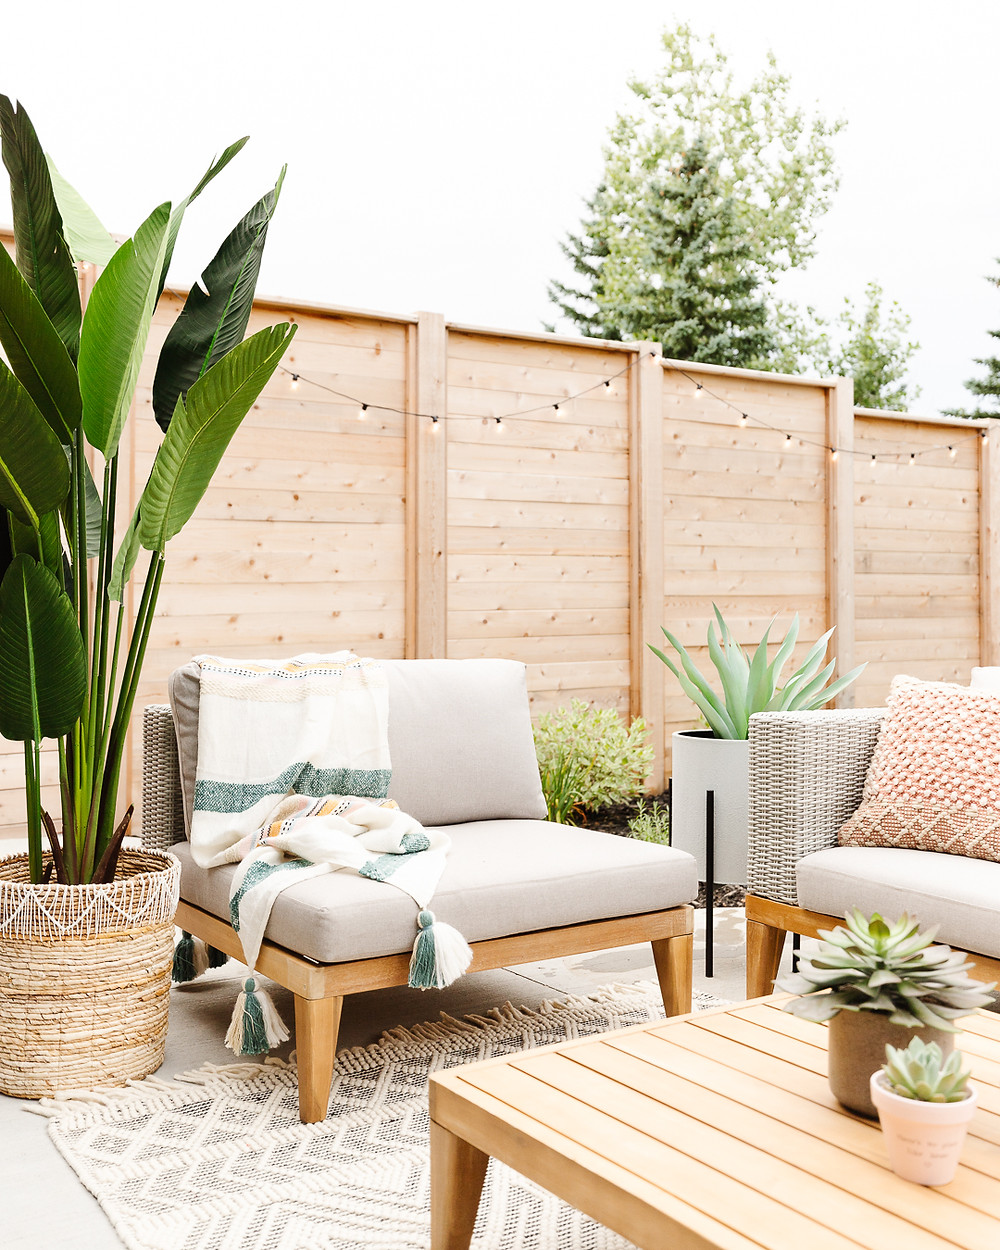 Modern outdoor Wicker sofa with wood accents and beige cushions black and white area rug chair with wood accent and striped throw blanket wood accent table with succulent pots wicker basket with blankets patterned oversized pillow on rug potted plant wood fence landscaping perennial flowerbed backyard concrete patio space